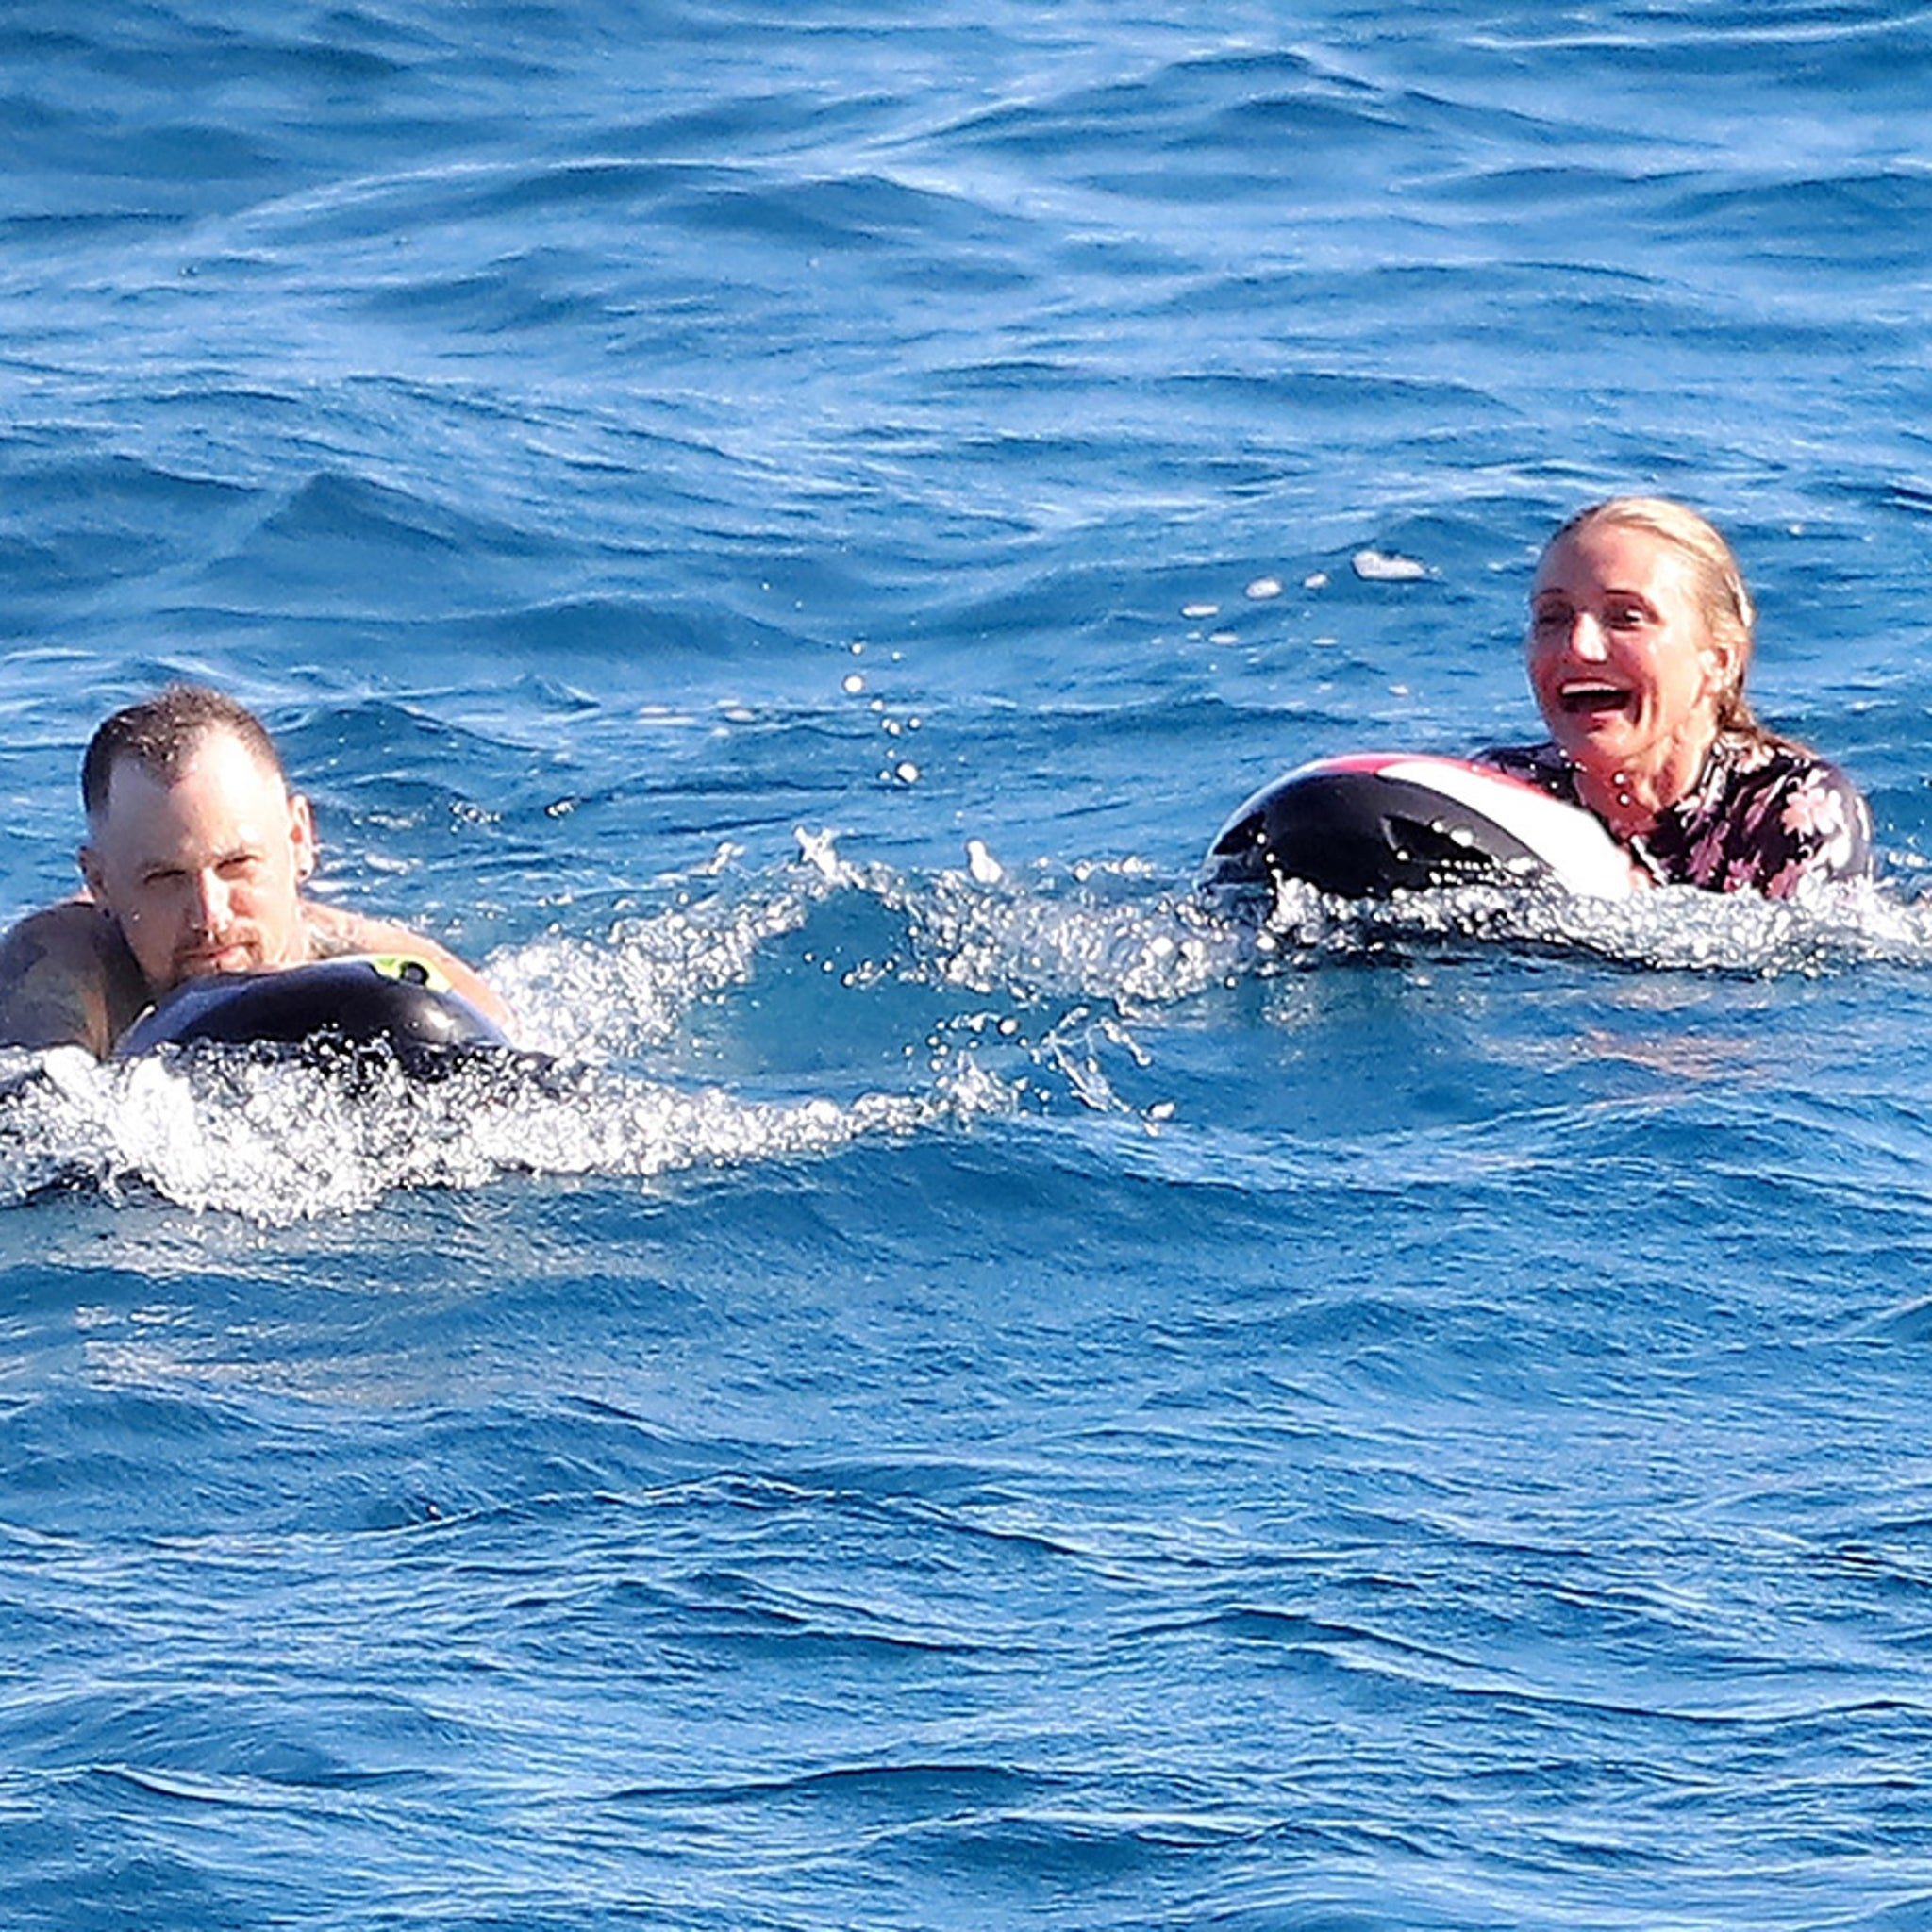 Cameron Diaz and Benji Madden Make a Splash in St. Tropez